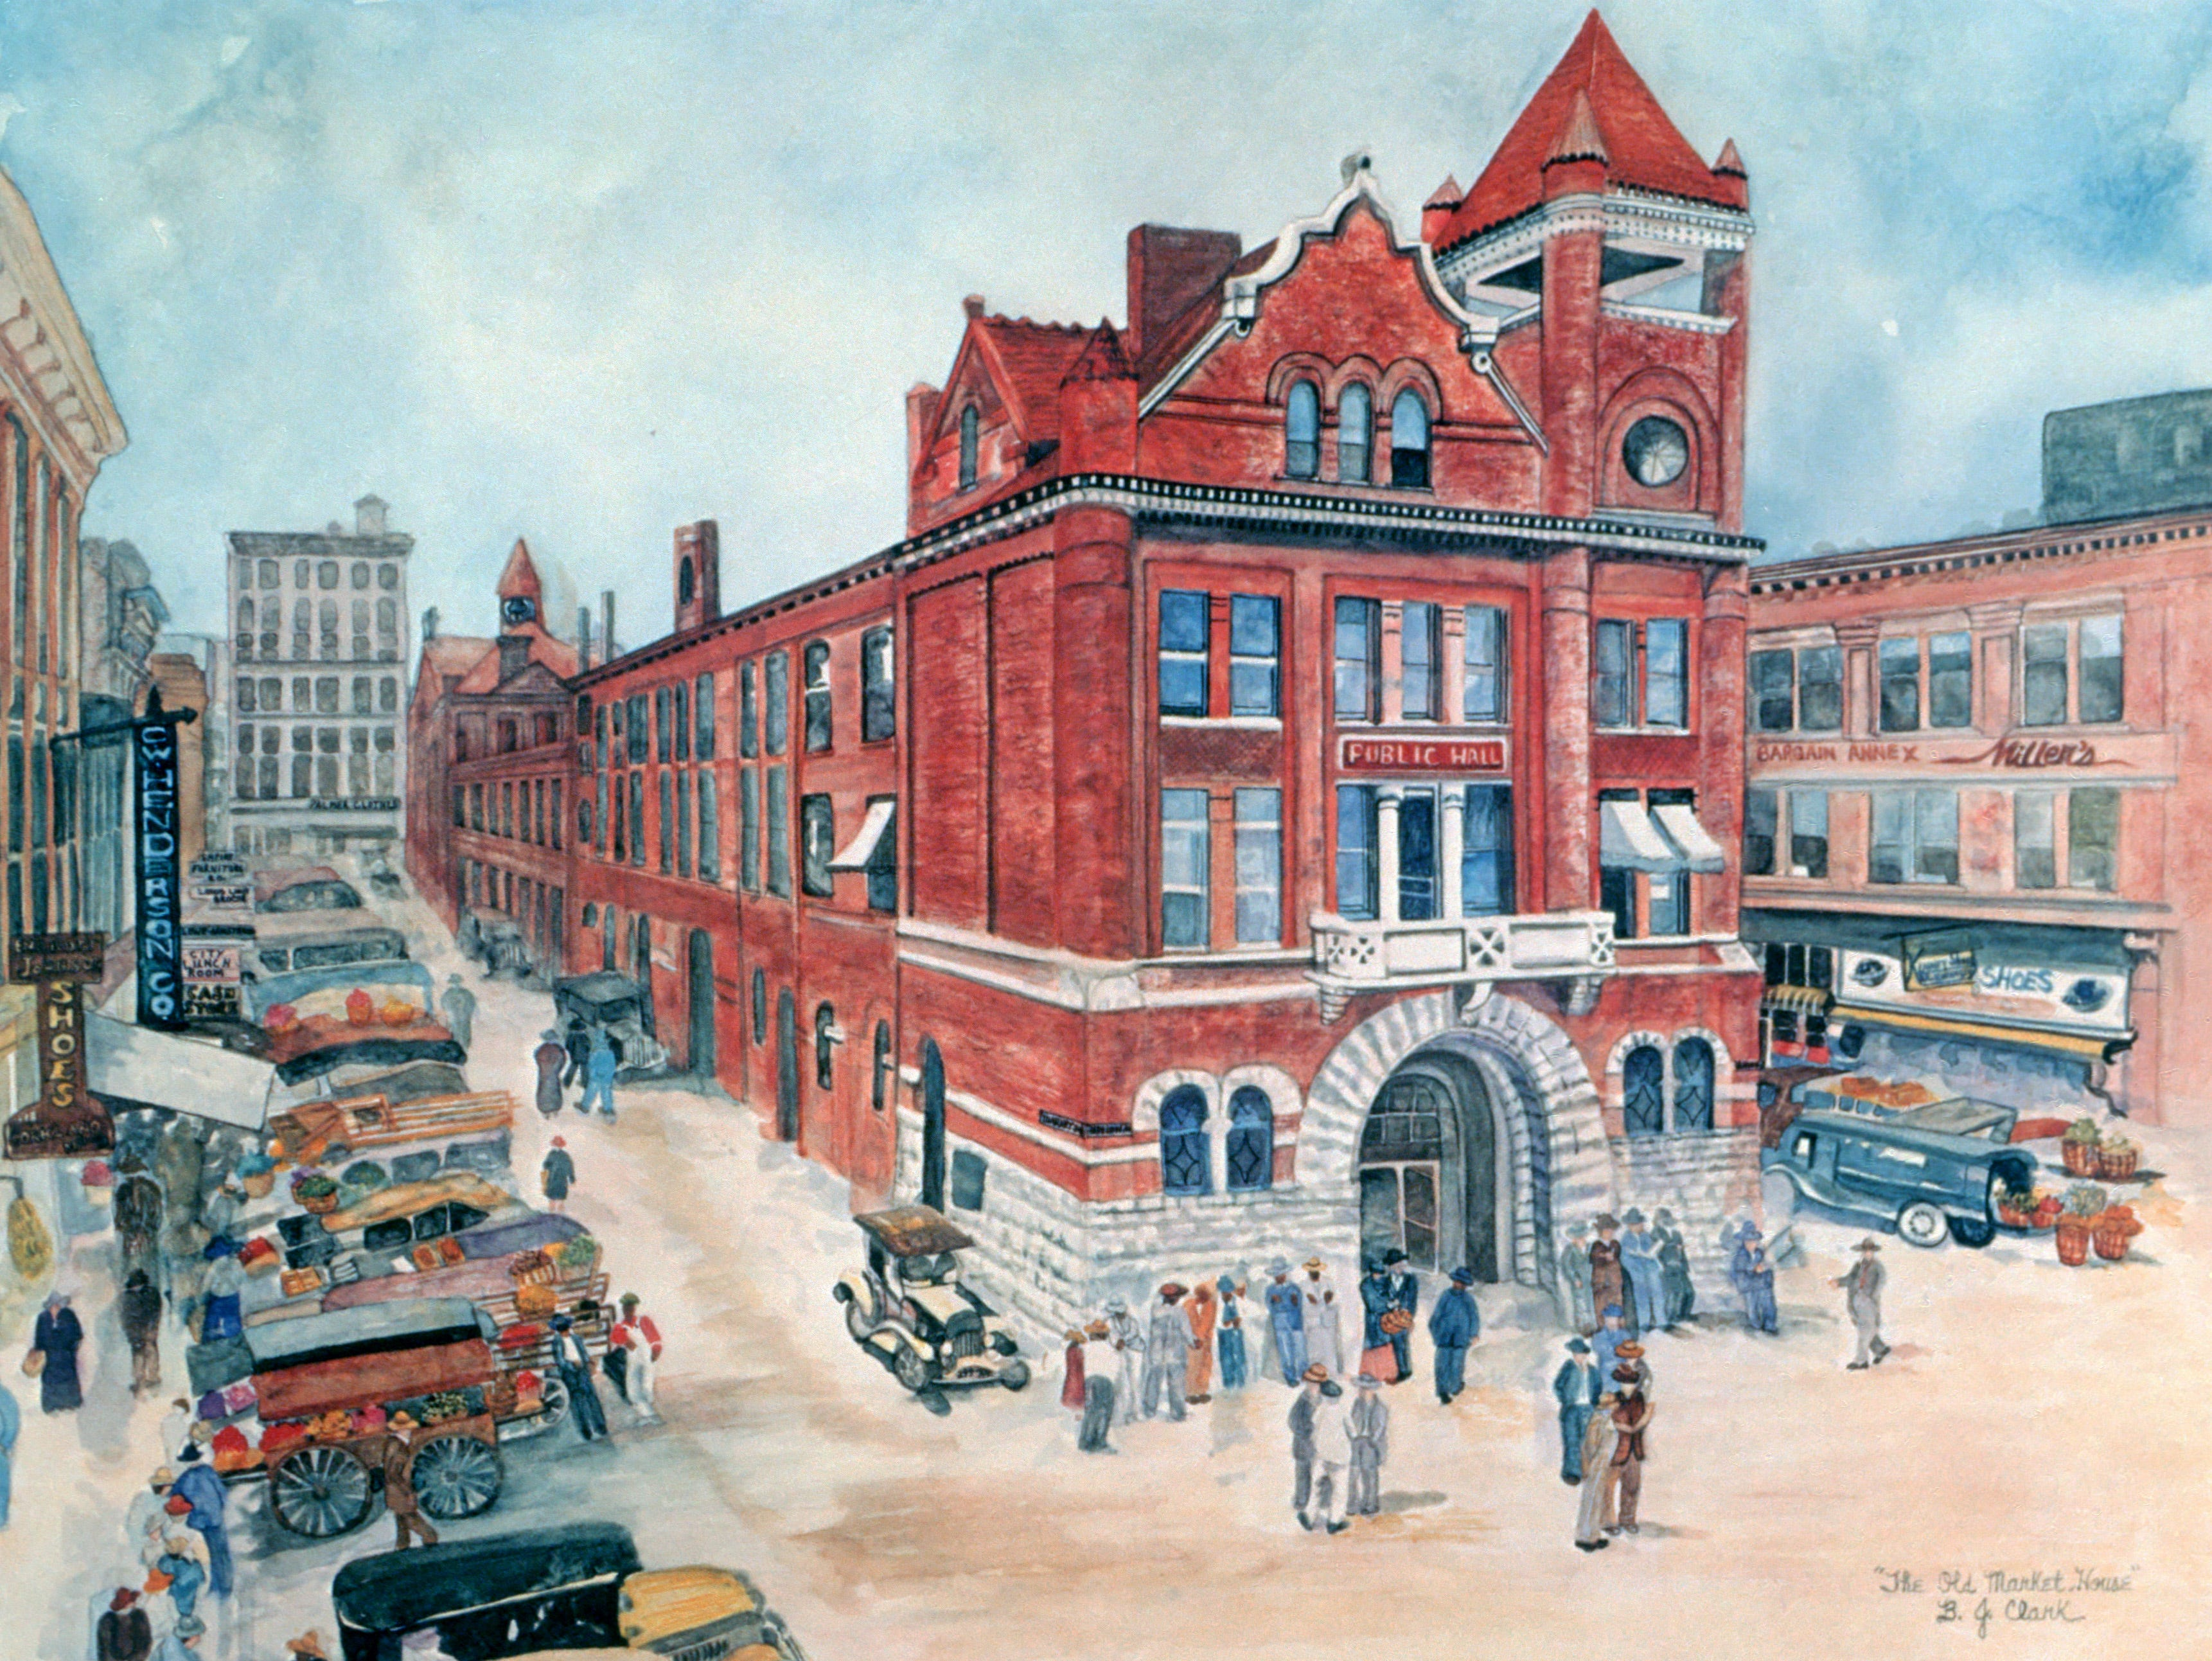 B.J. Clark's painting of the Market House on Market Square captures a scene from her childhood.